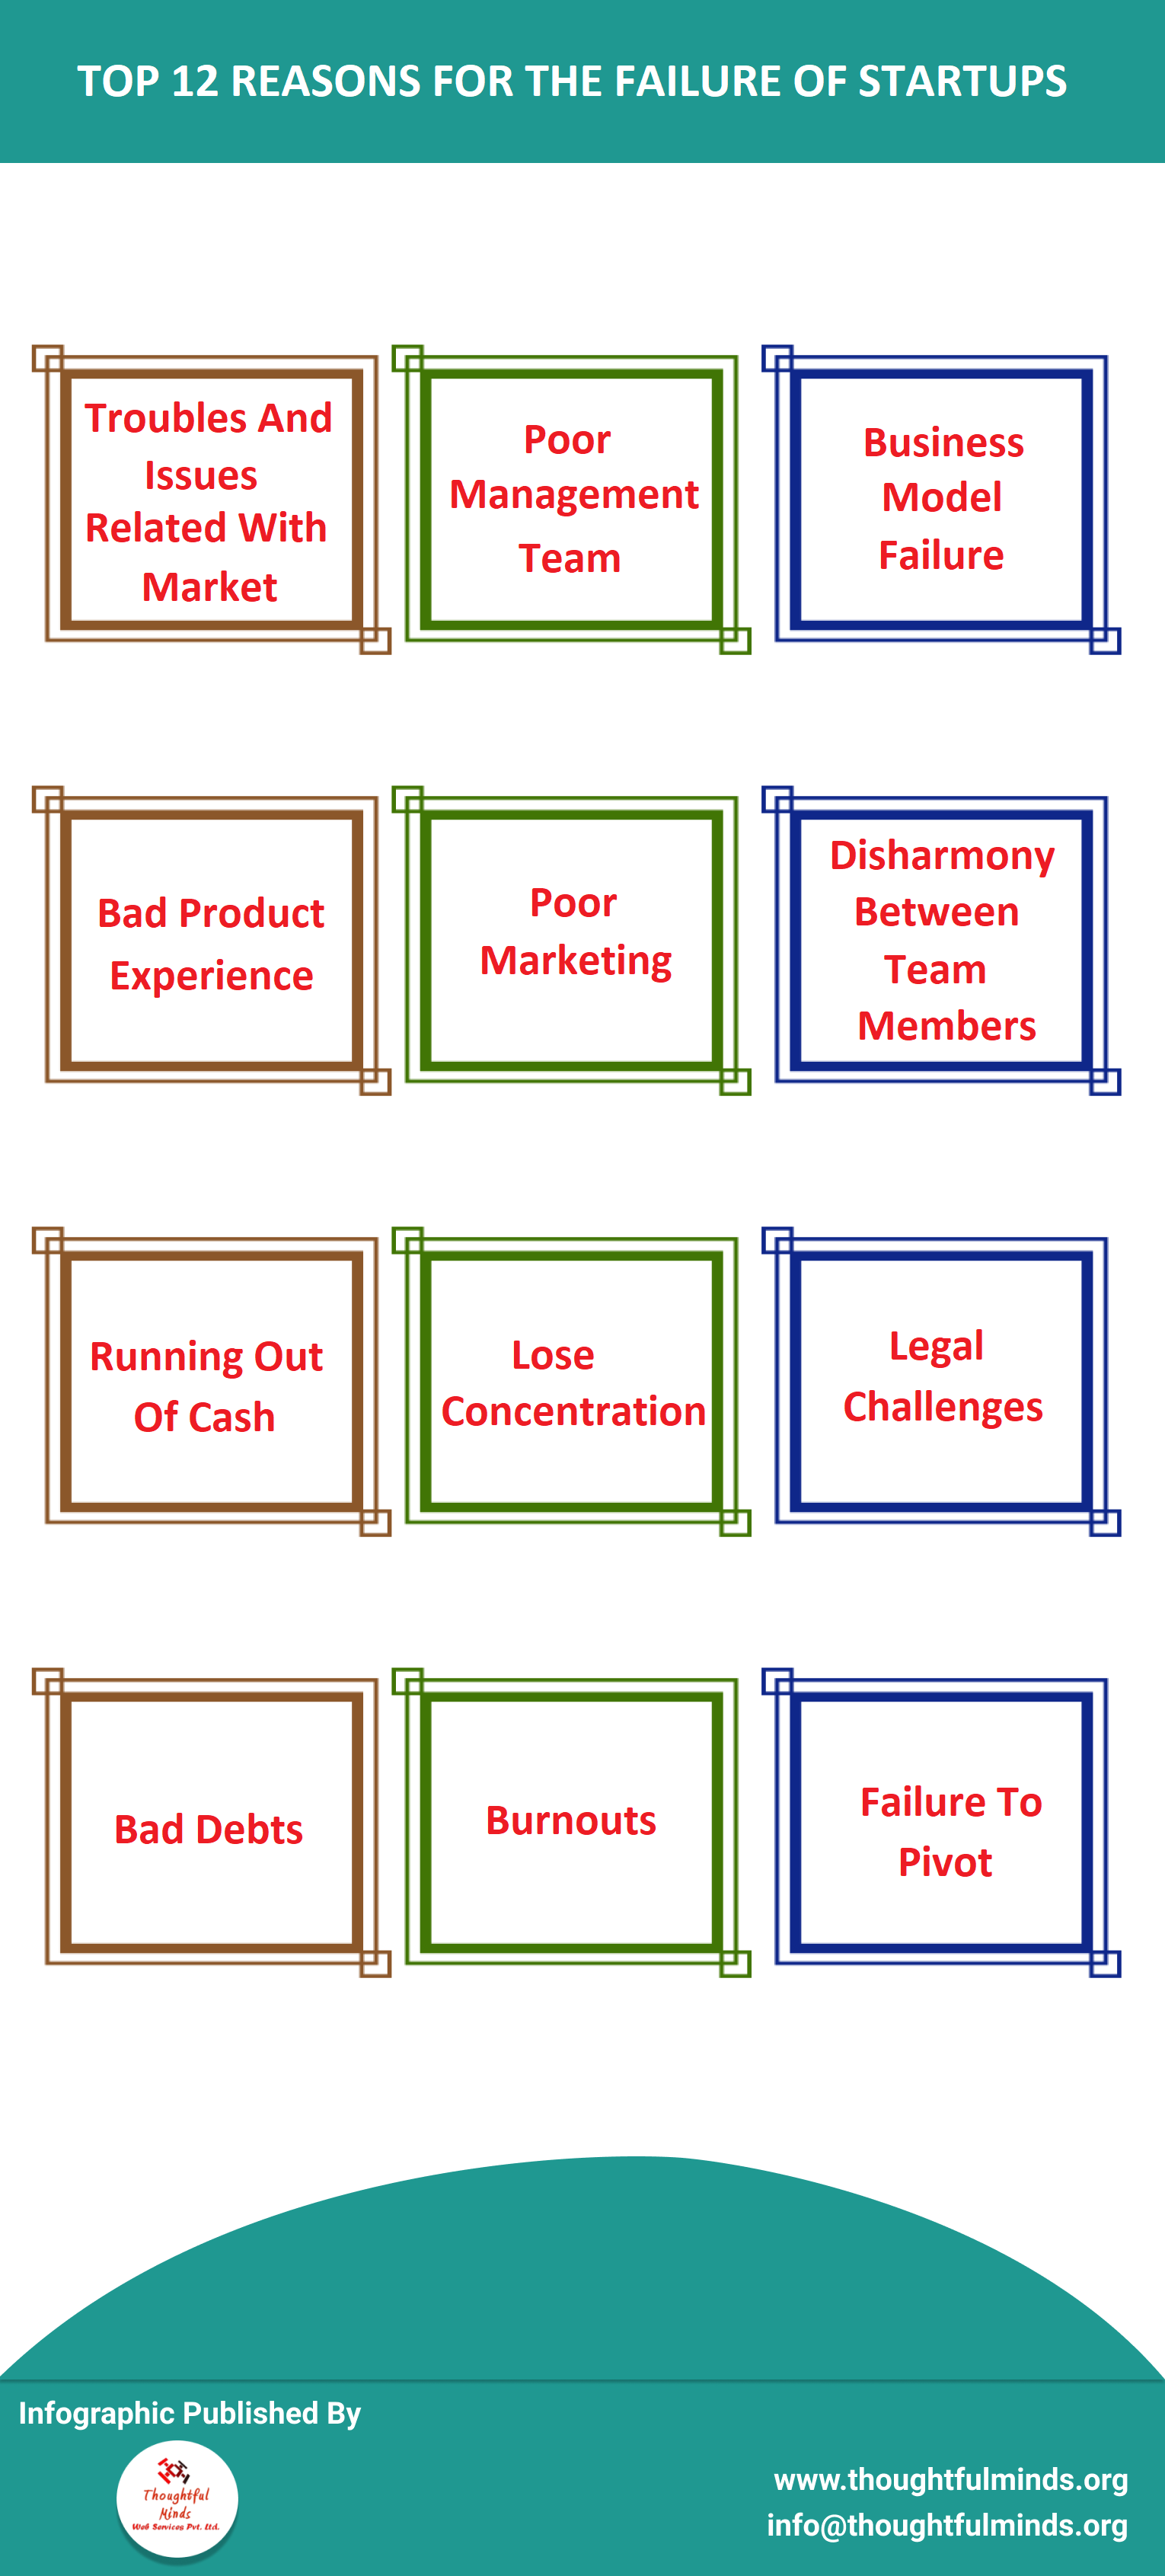 Infographic On Startup Failure Reasons - ThoughtfulMinds